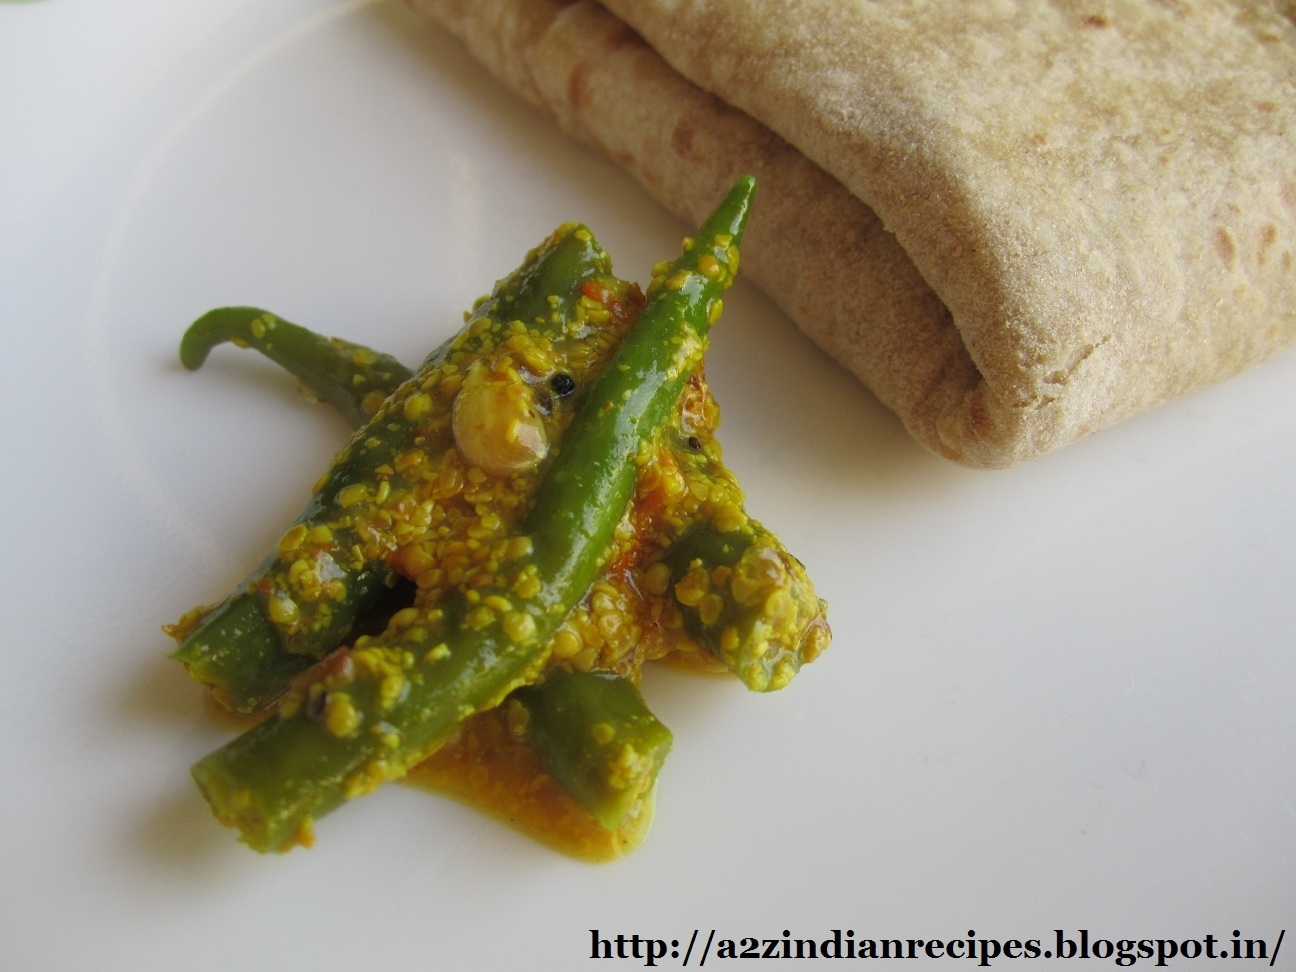 Green Chilli Pickle / Hirvya Mirchiche Lonche